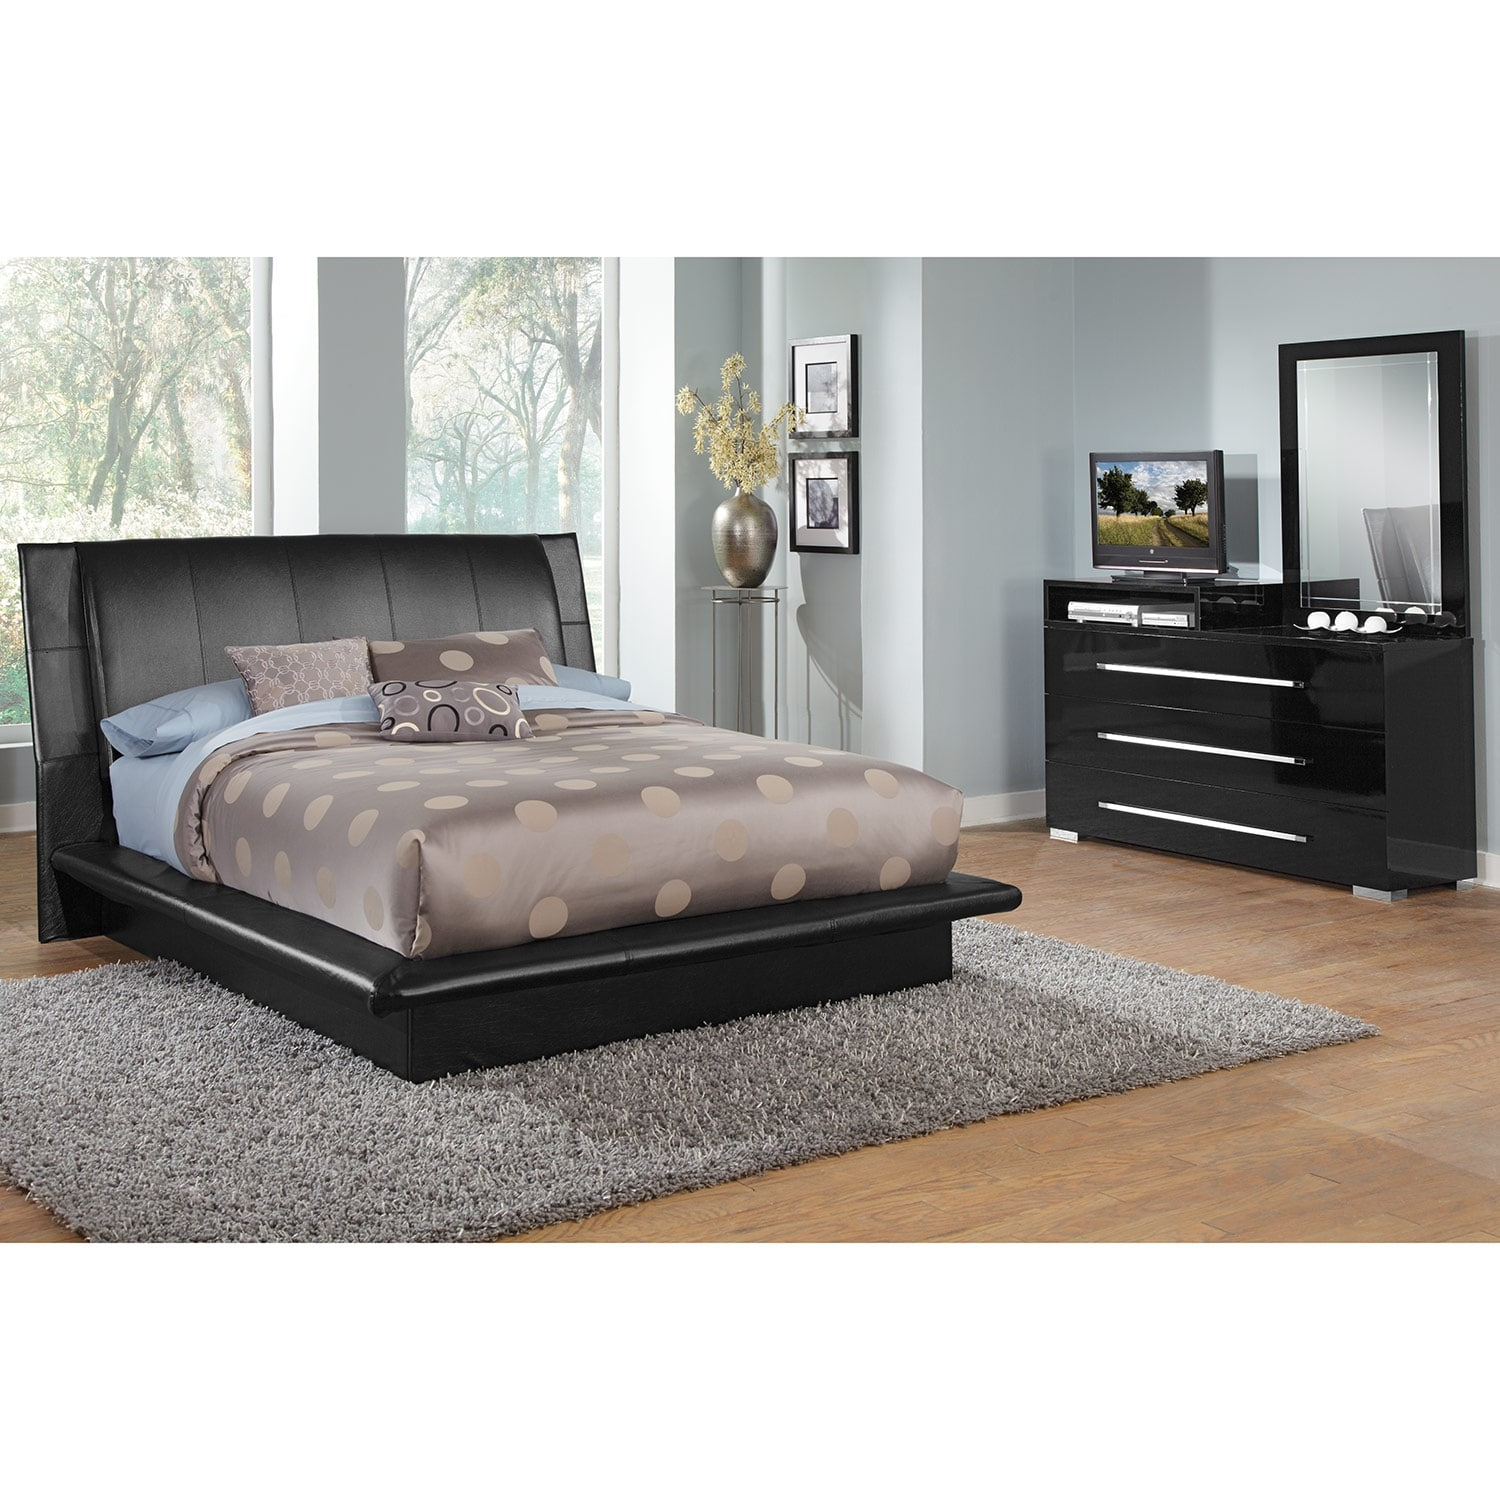 Dimora black 5 pc queen bedroom value city furniture for Furniture bedroom